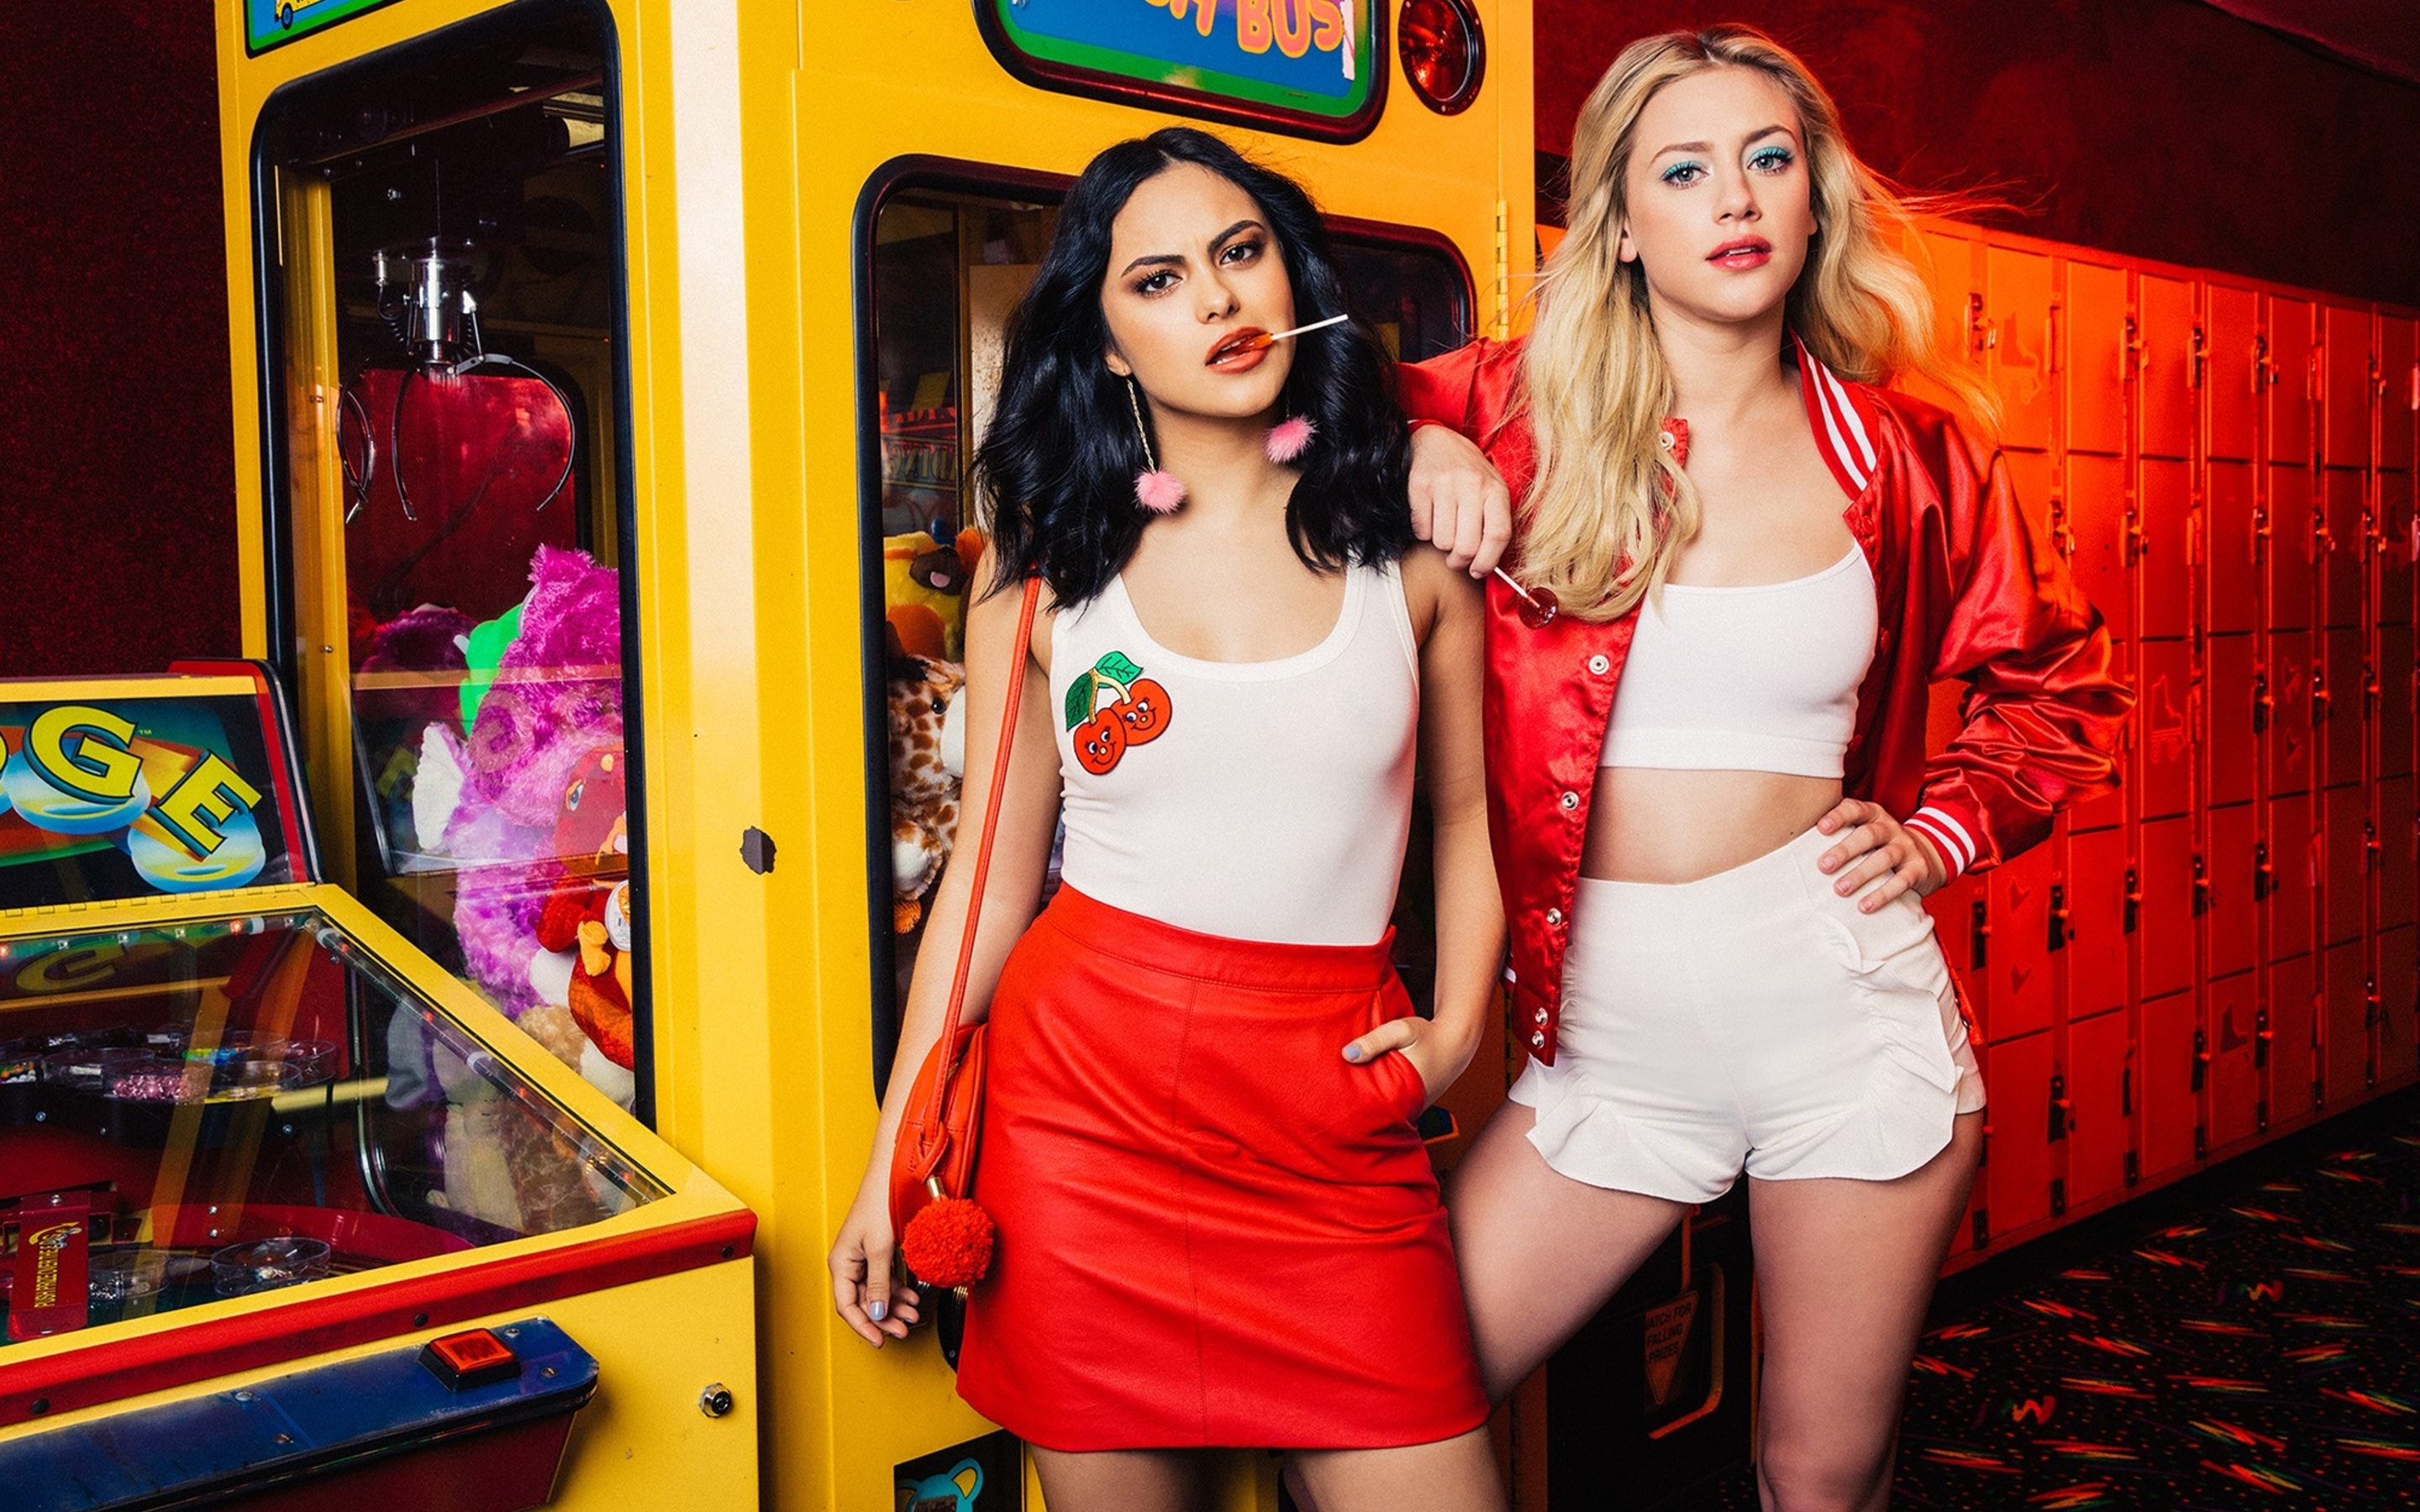 betty-and-veronica-riverdale-ad.jpg